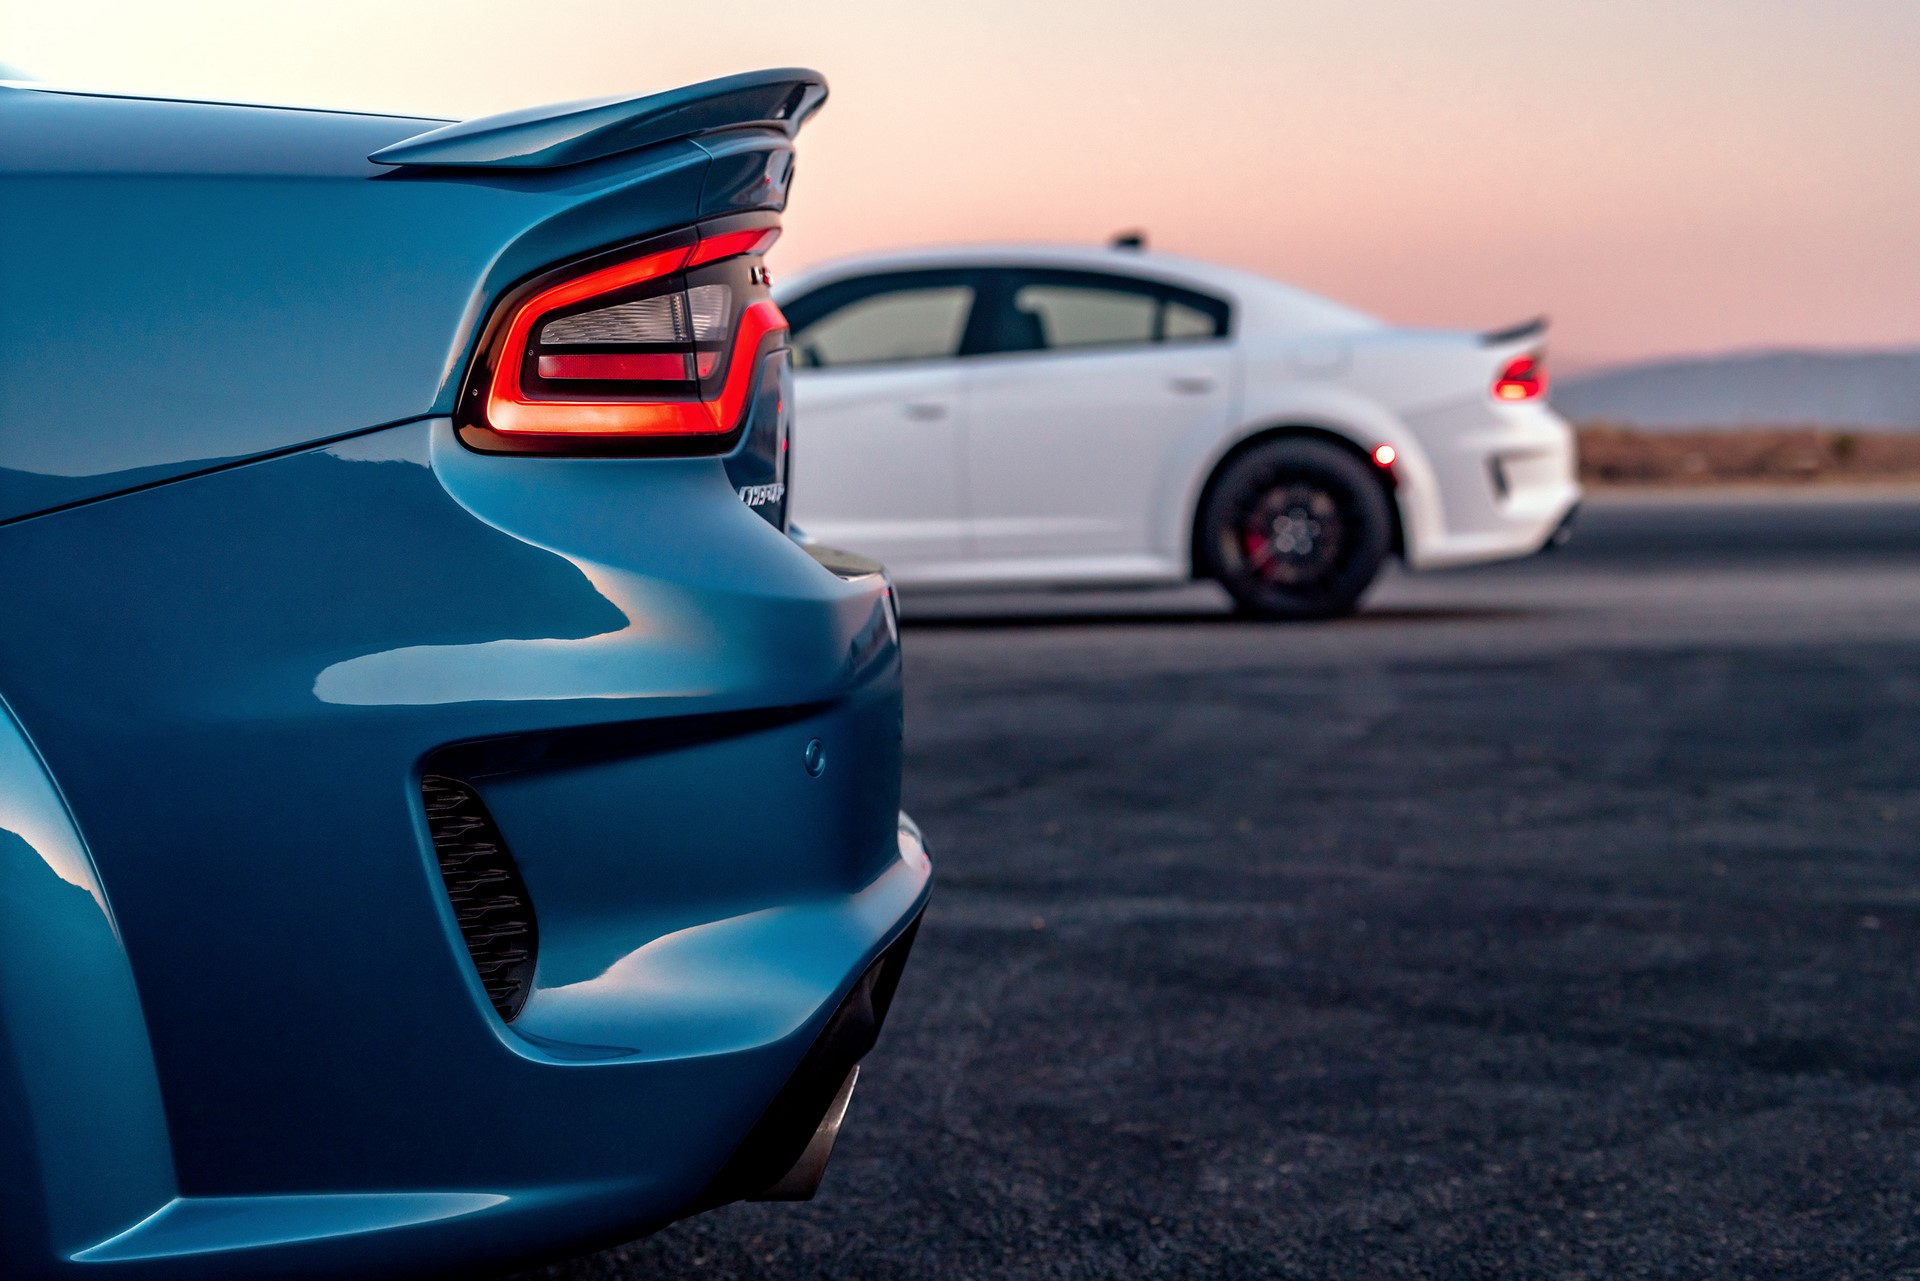 2020 Dodge Charger SRT Hellcat Widebody (Front) and 2020 Dodge Charger Scat Pack Widebody (Back)